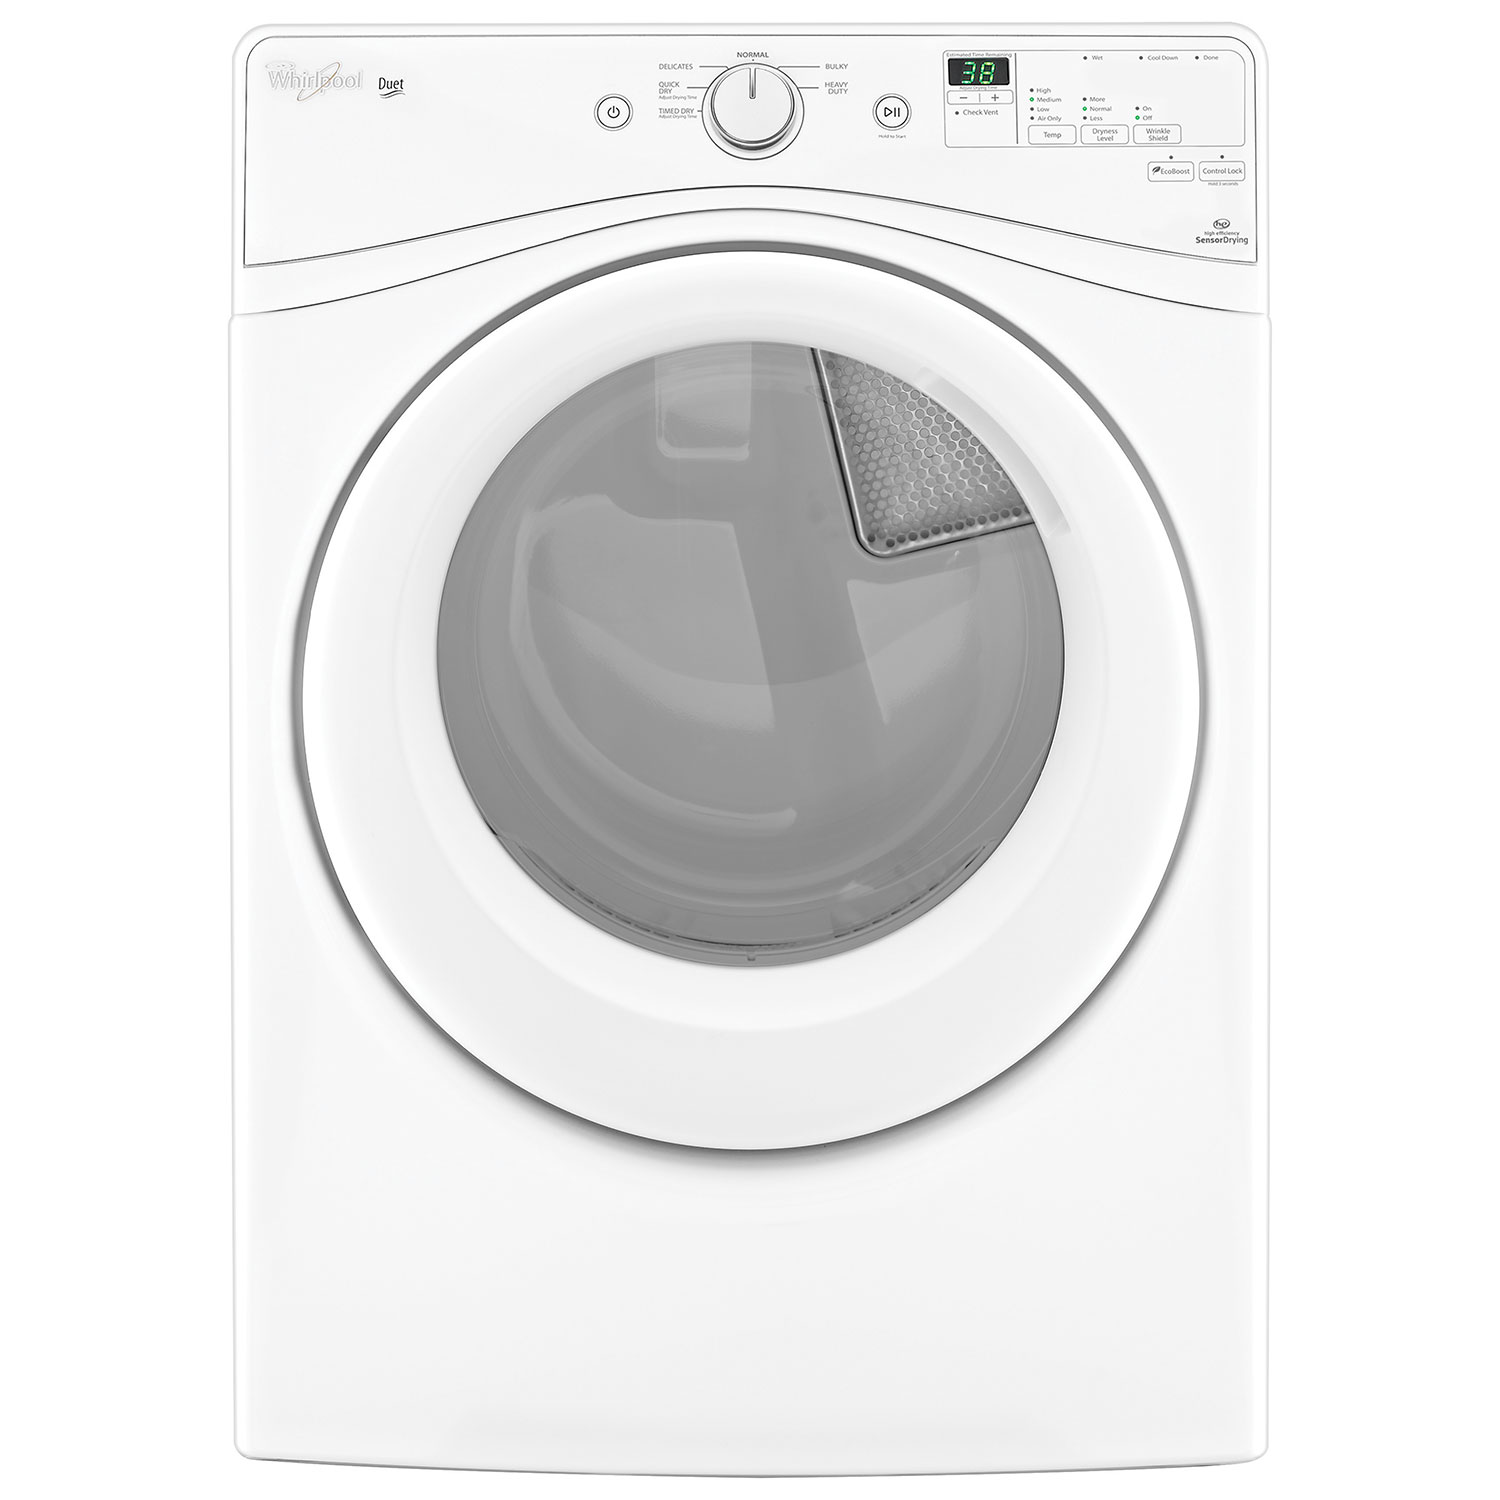 steam whirlpool washer pedestal image main front load chrome product shadow duet